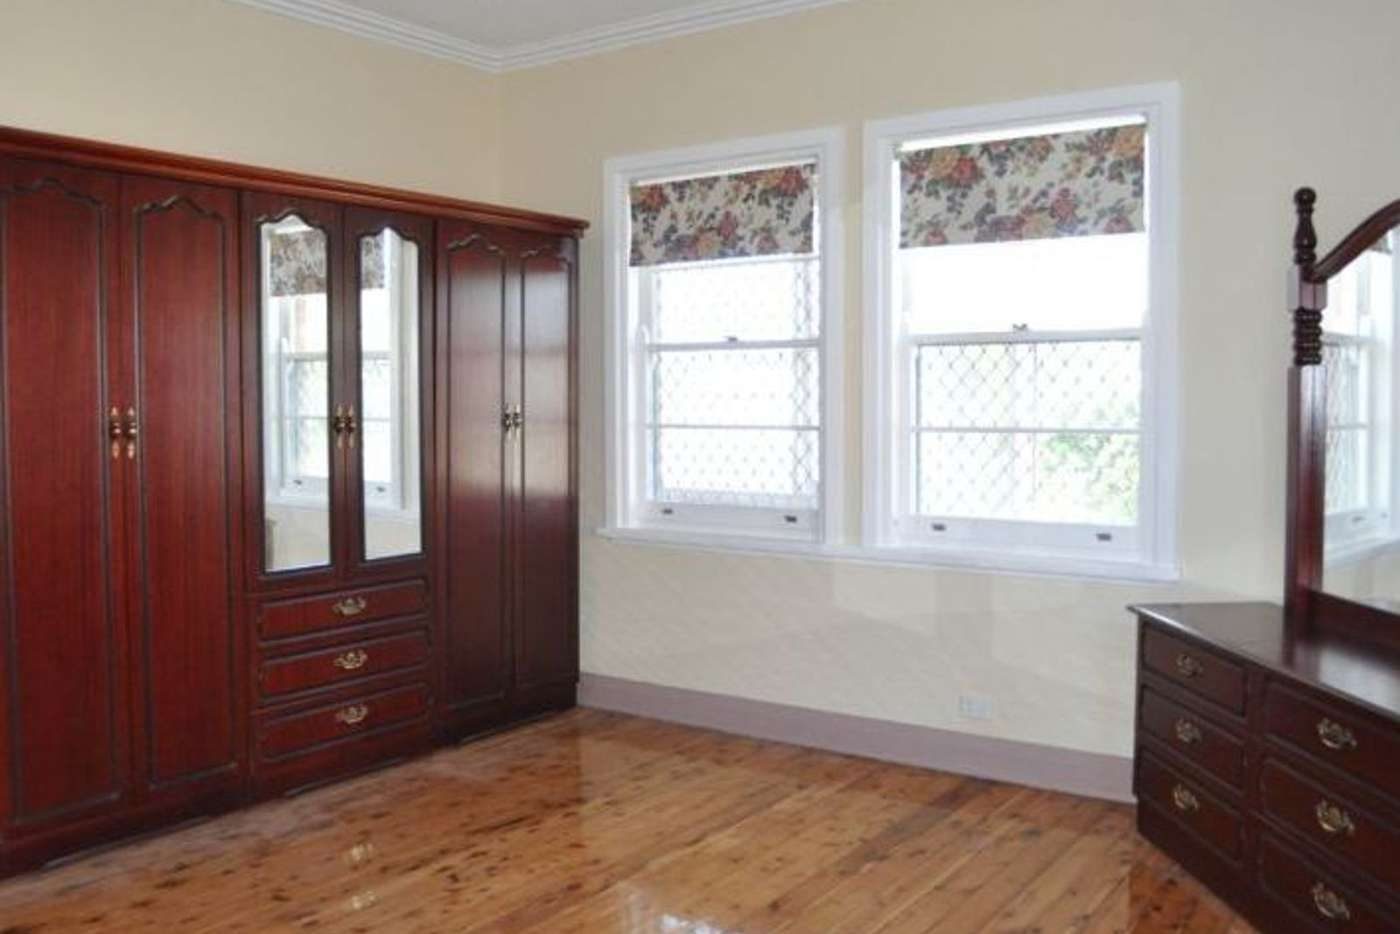 Seventh view of Homely house listing, 11 Blandford Street, Bathurst NSW 2795